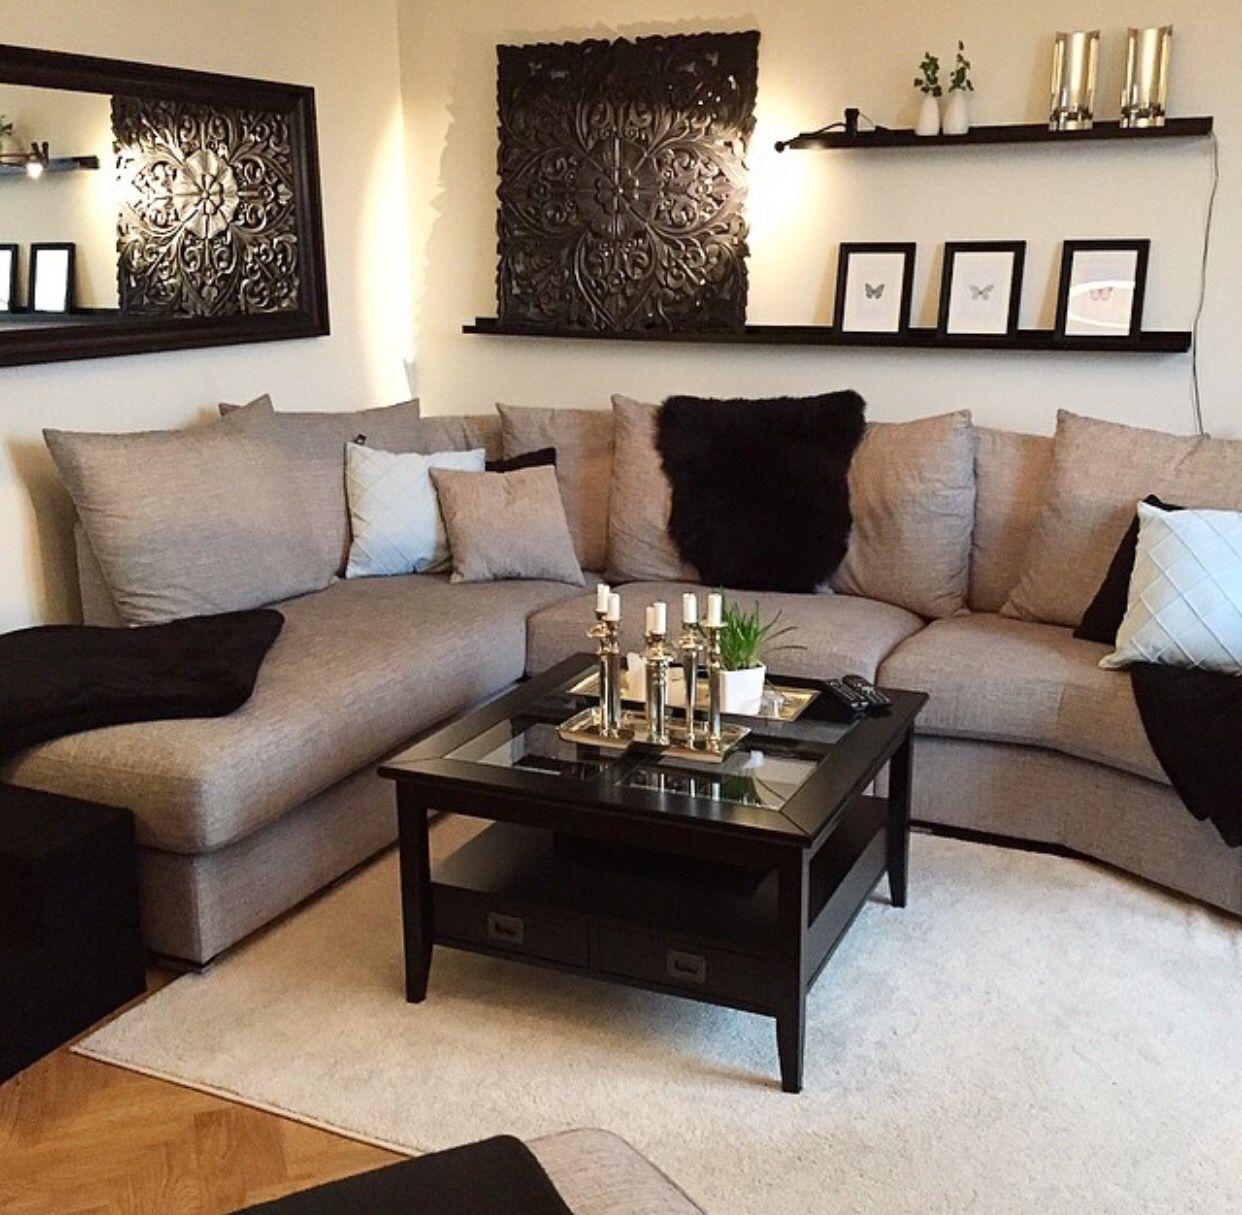 Pin by my info on decoracion pinterest living rooms room and